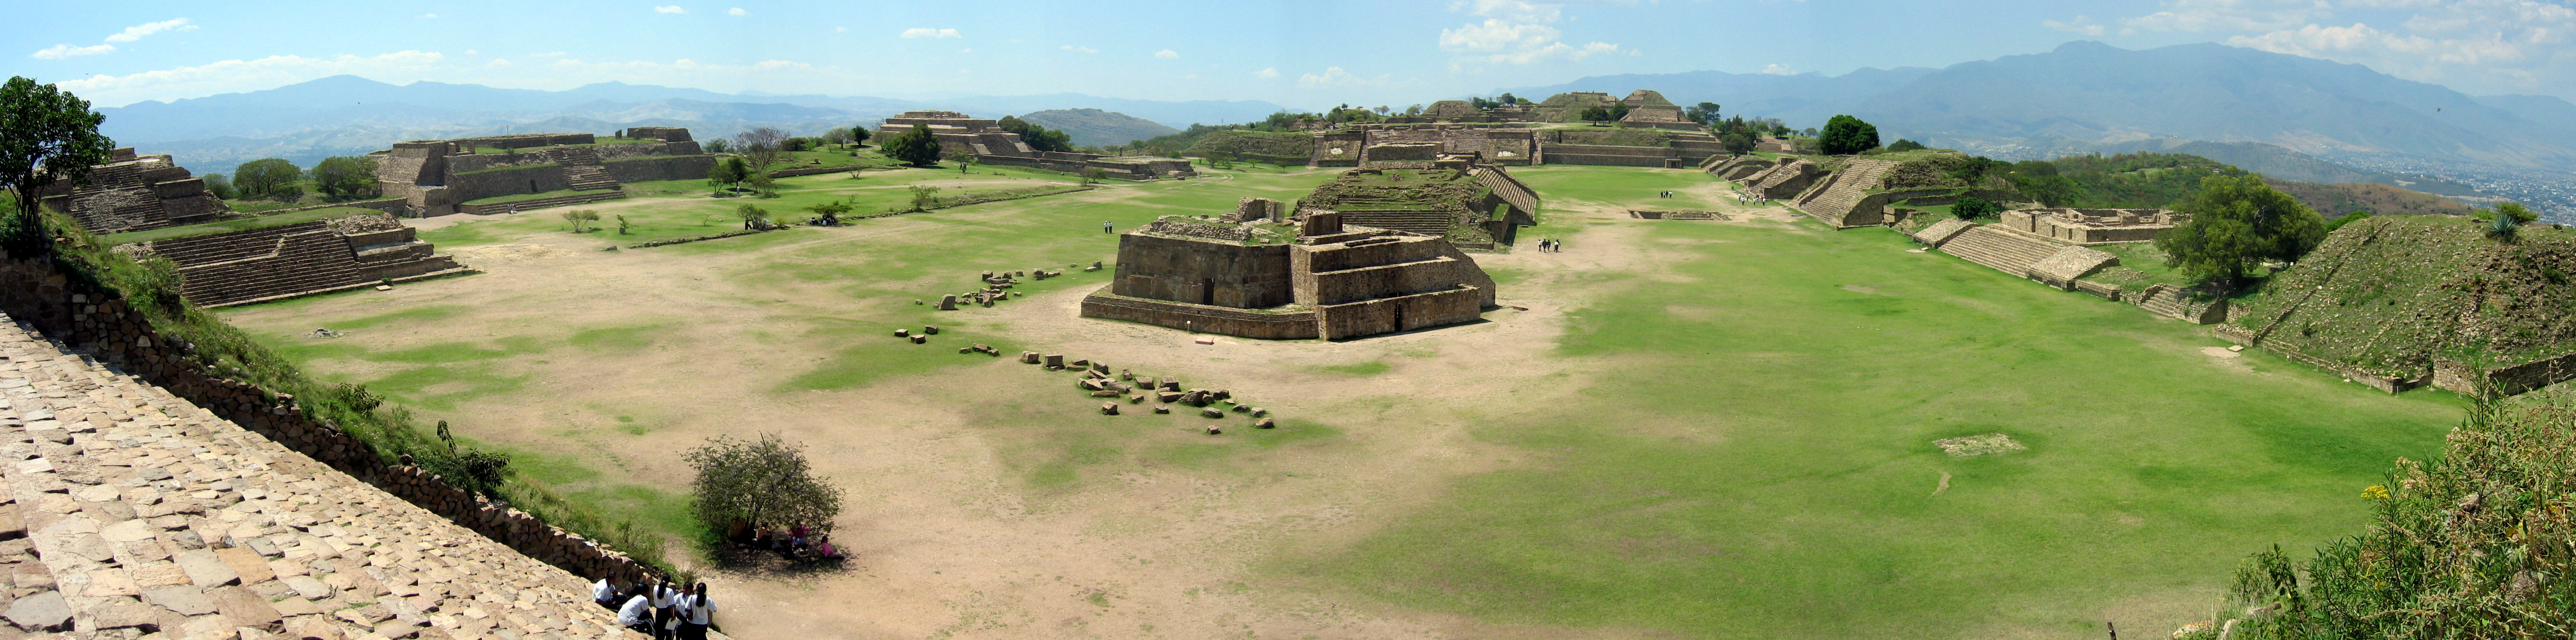 Panorama_of_Monte_Alban_from_the_South_P